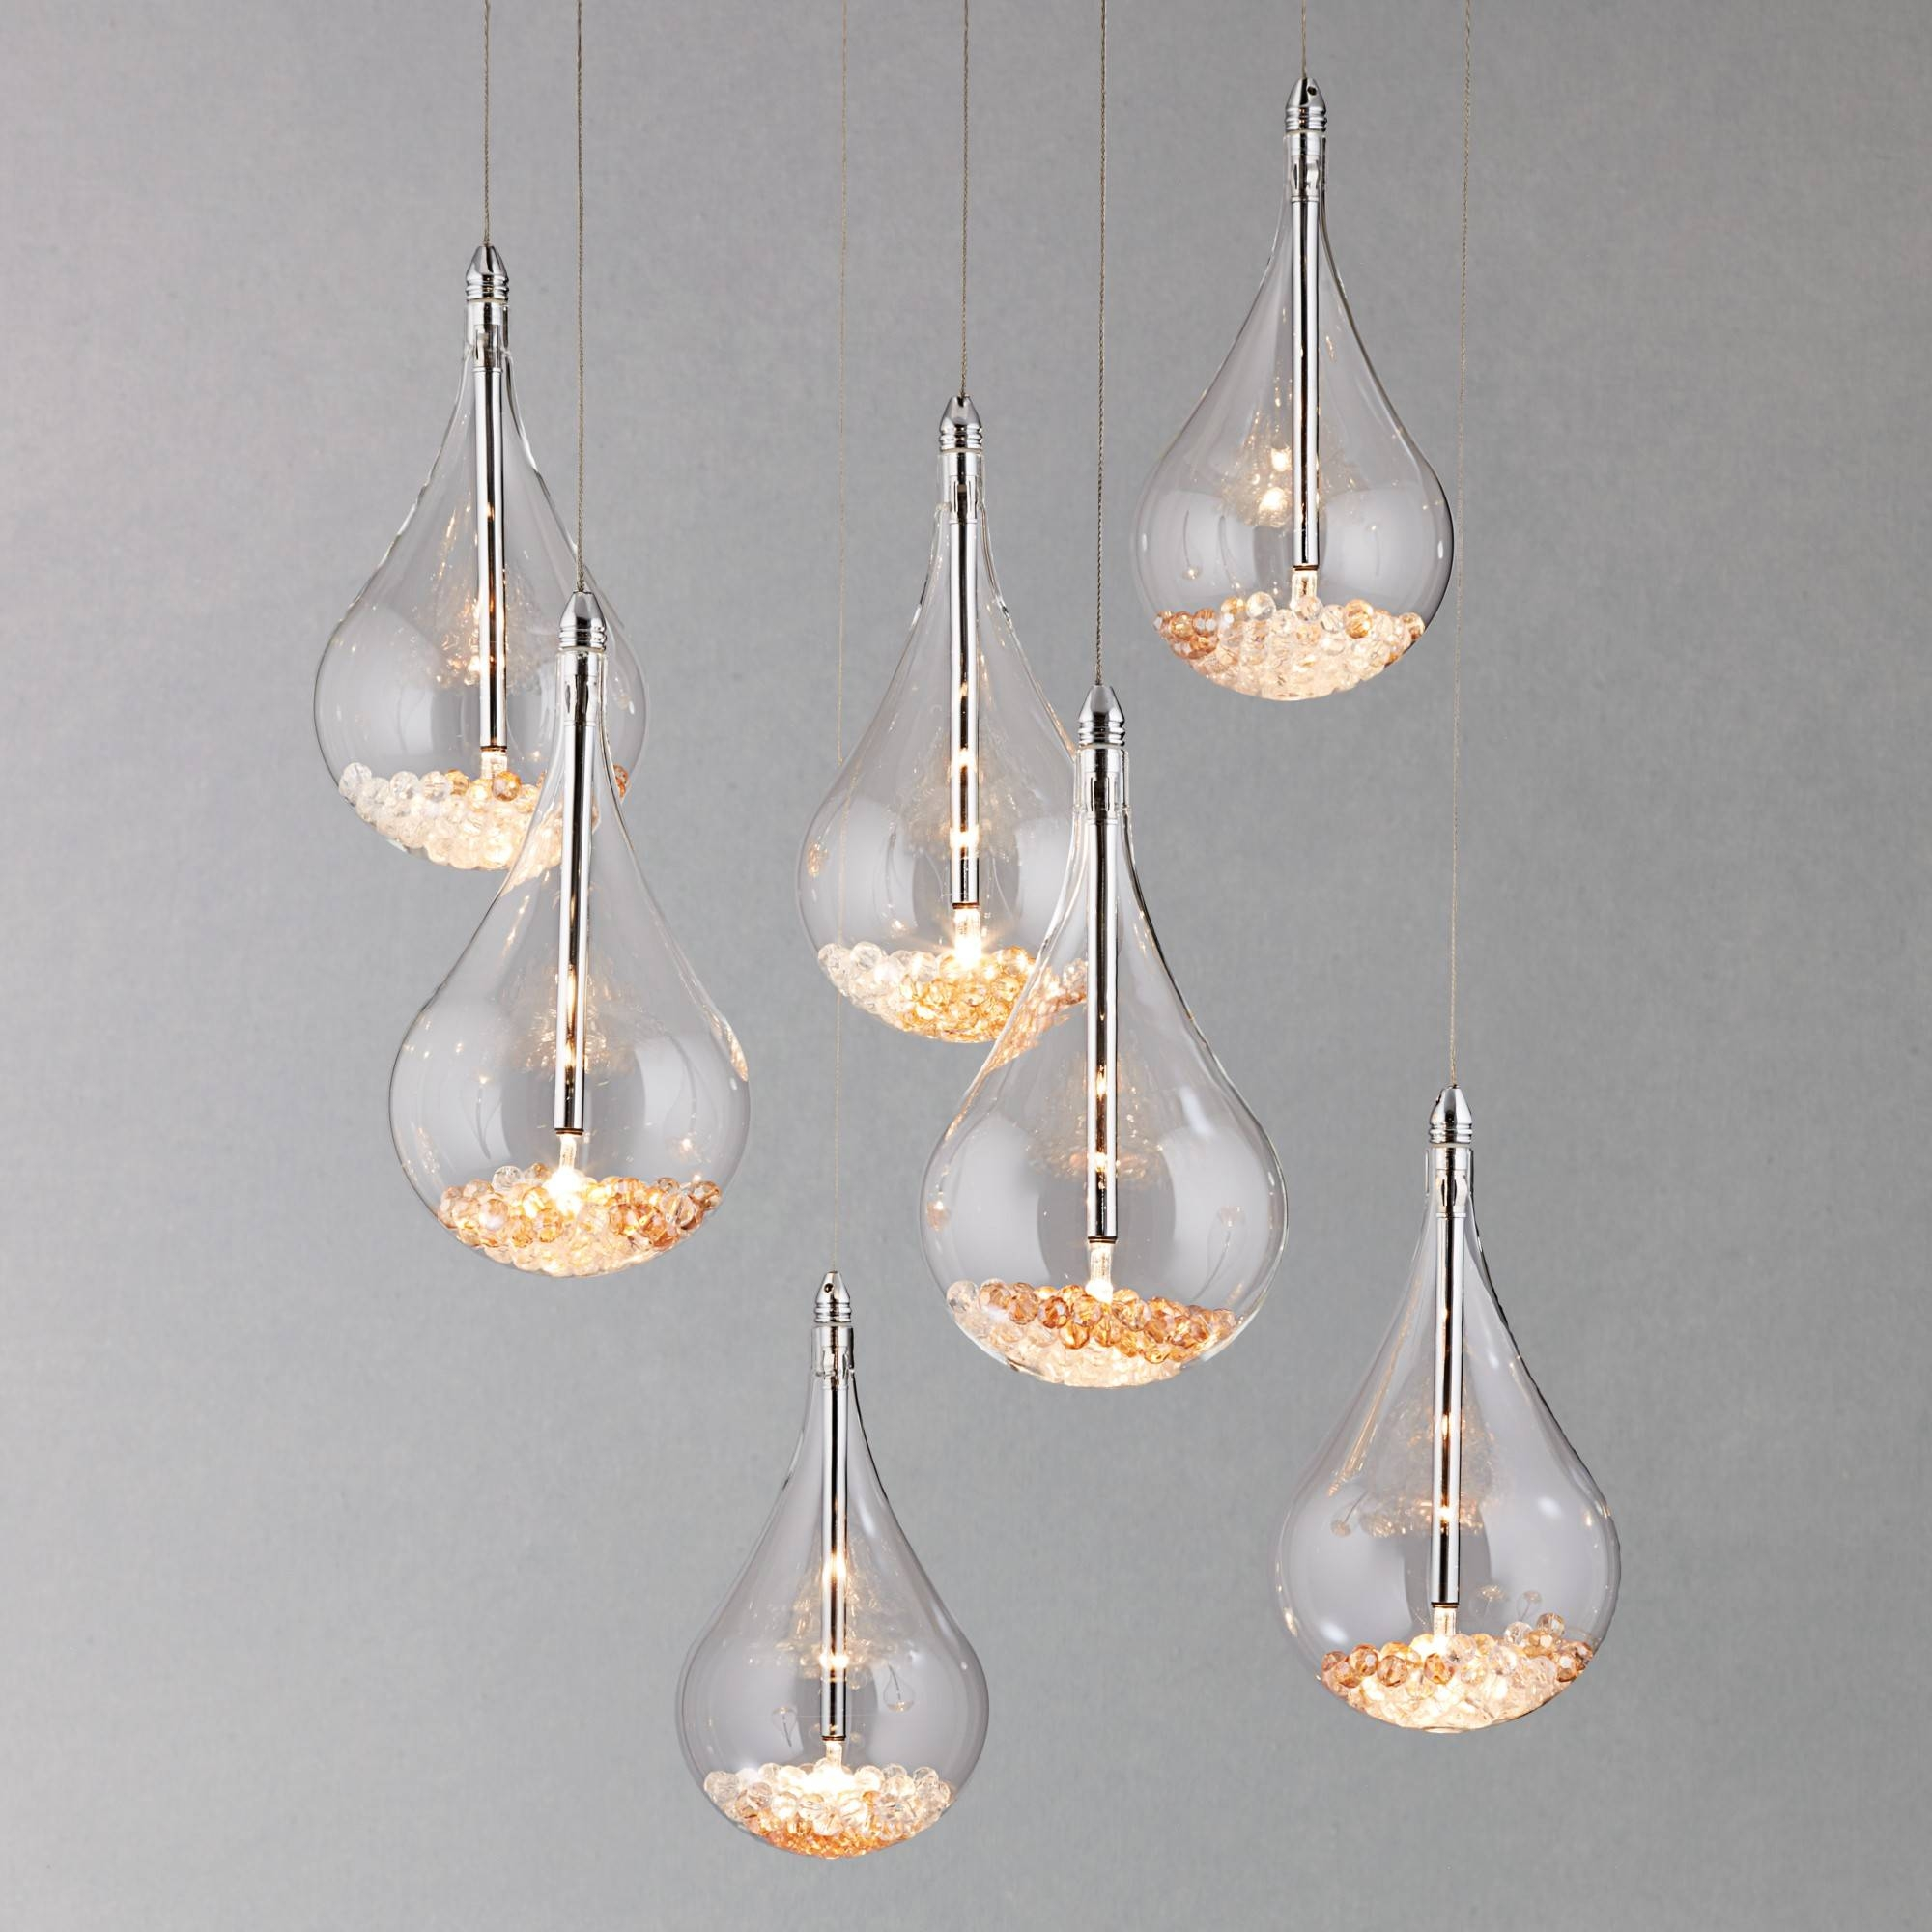 Cluster Lights - Our Pick Of The Best | Ideal Home with regard to John Lewis Kitchen Pendant Lighting (Image 1 of 15)